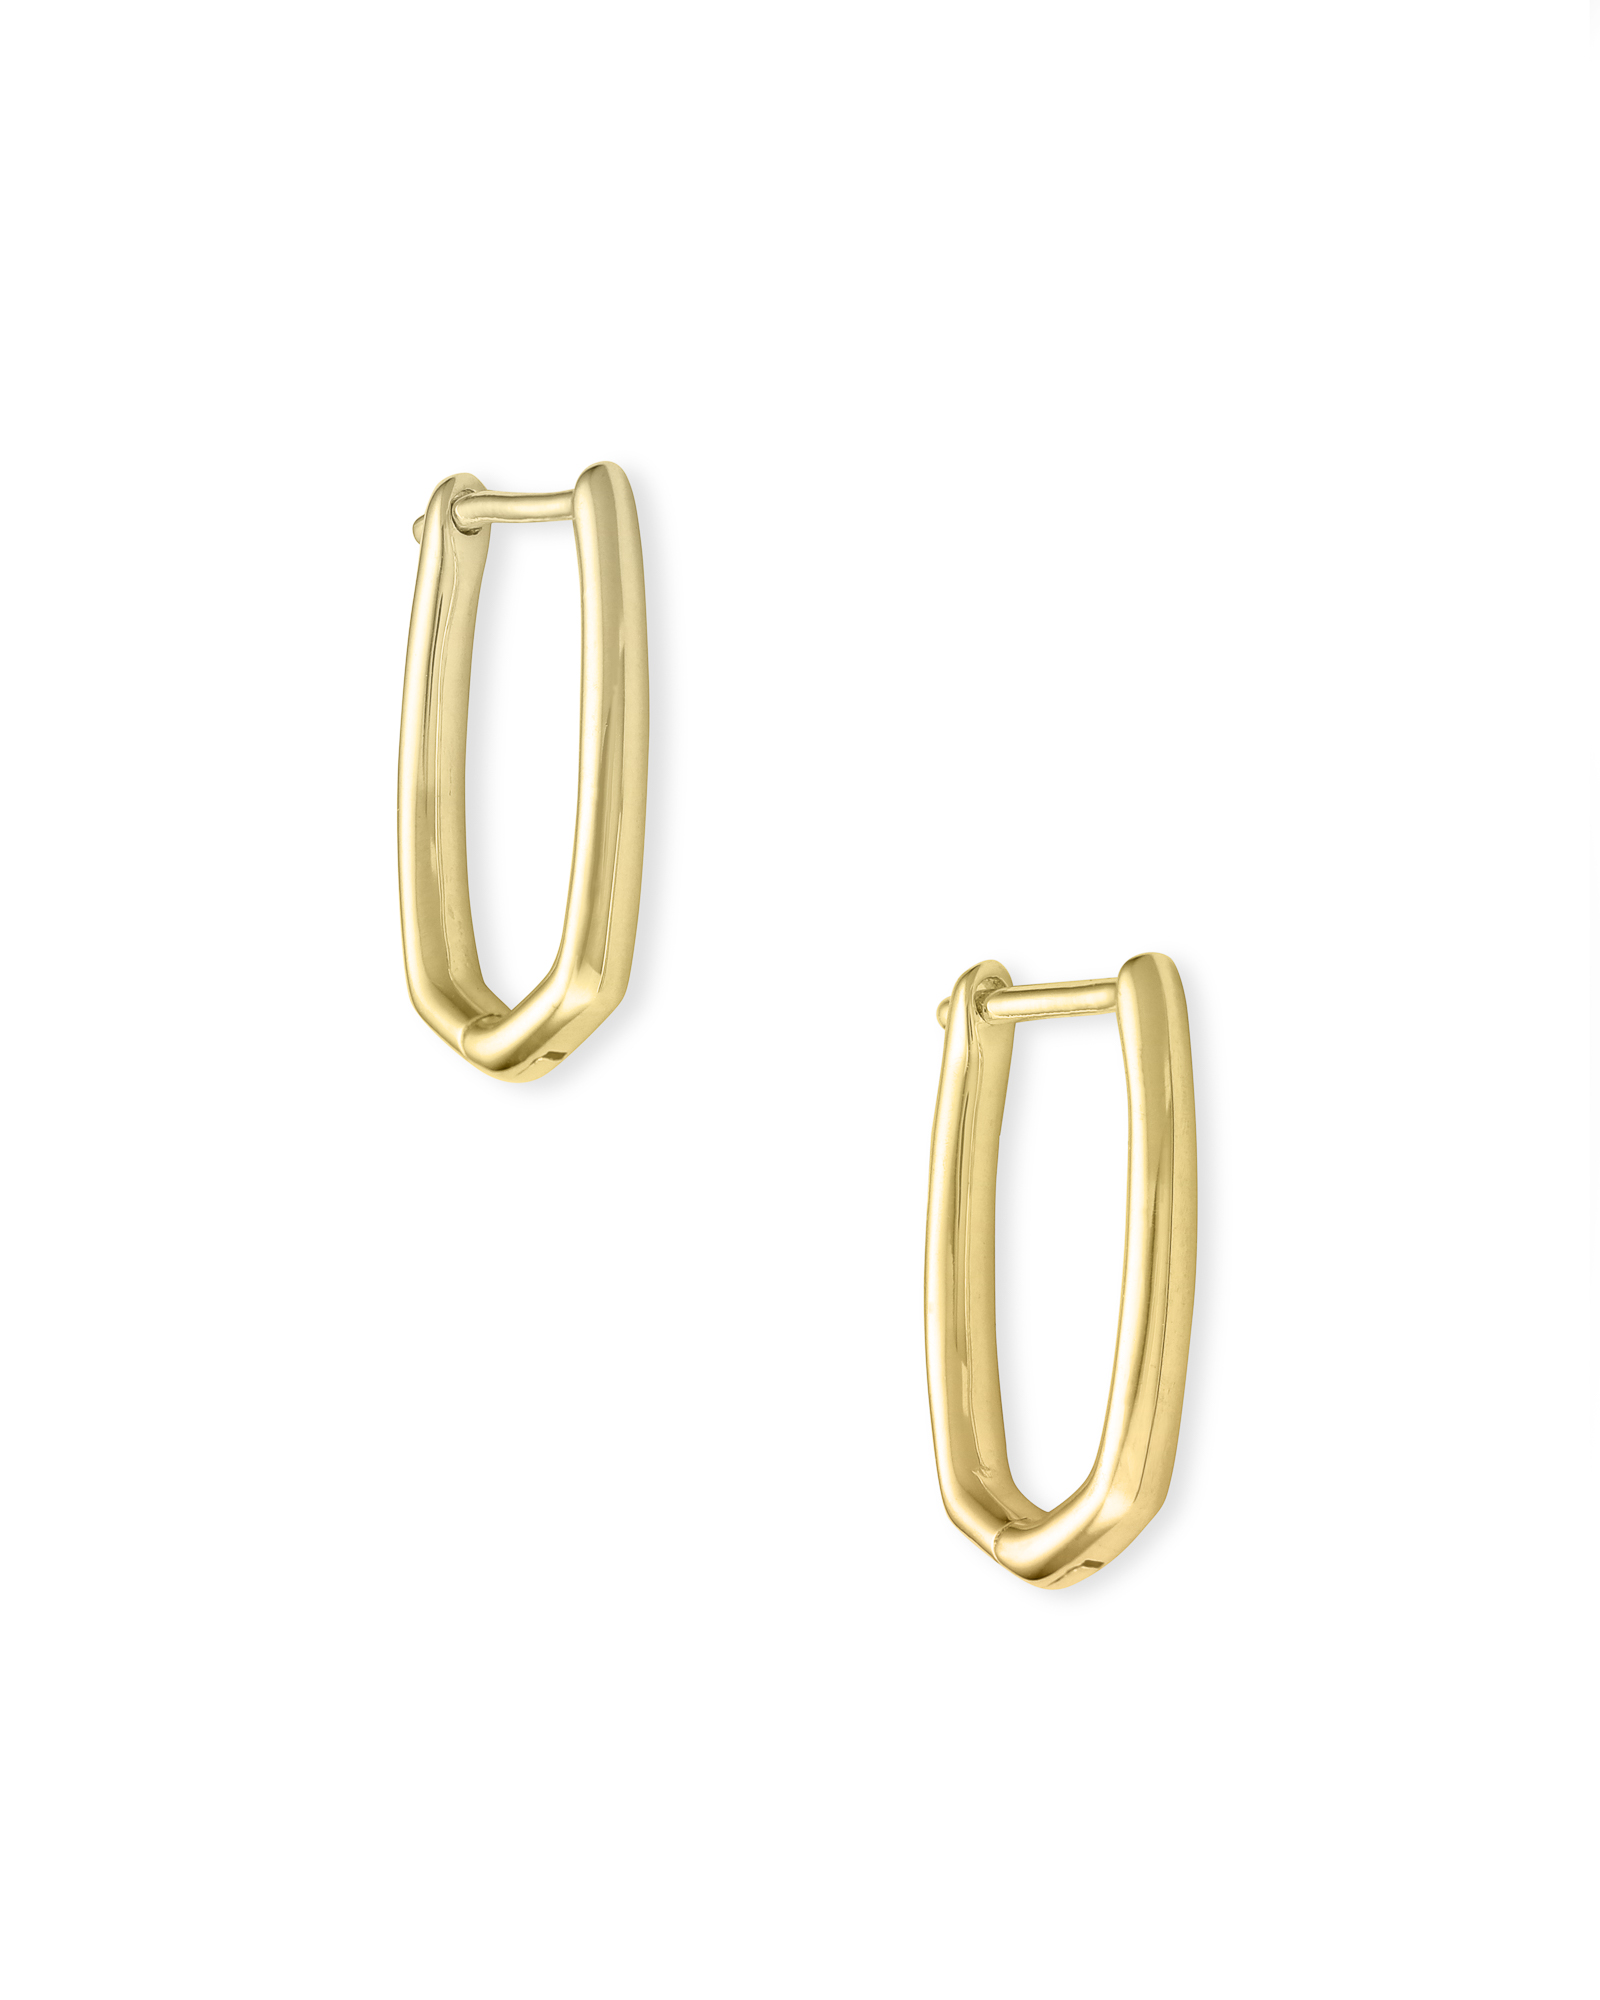 Ellen Huggie Earrings in 18k Gold Vermeil